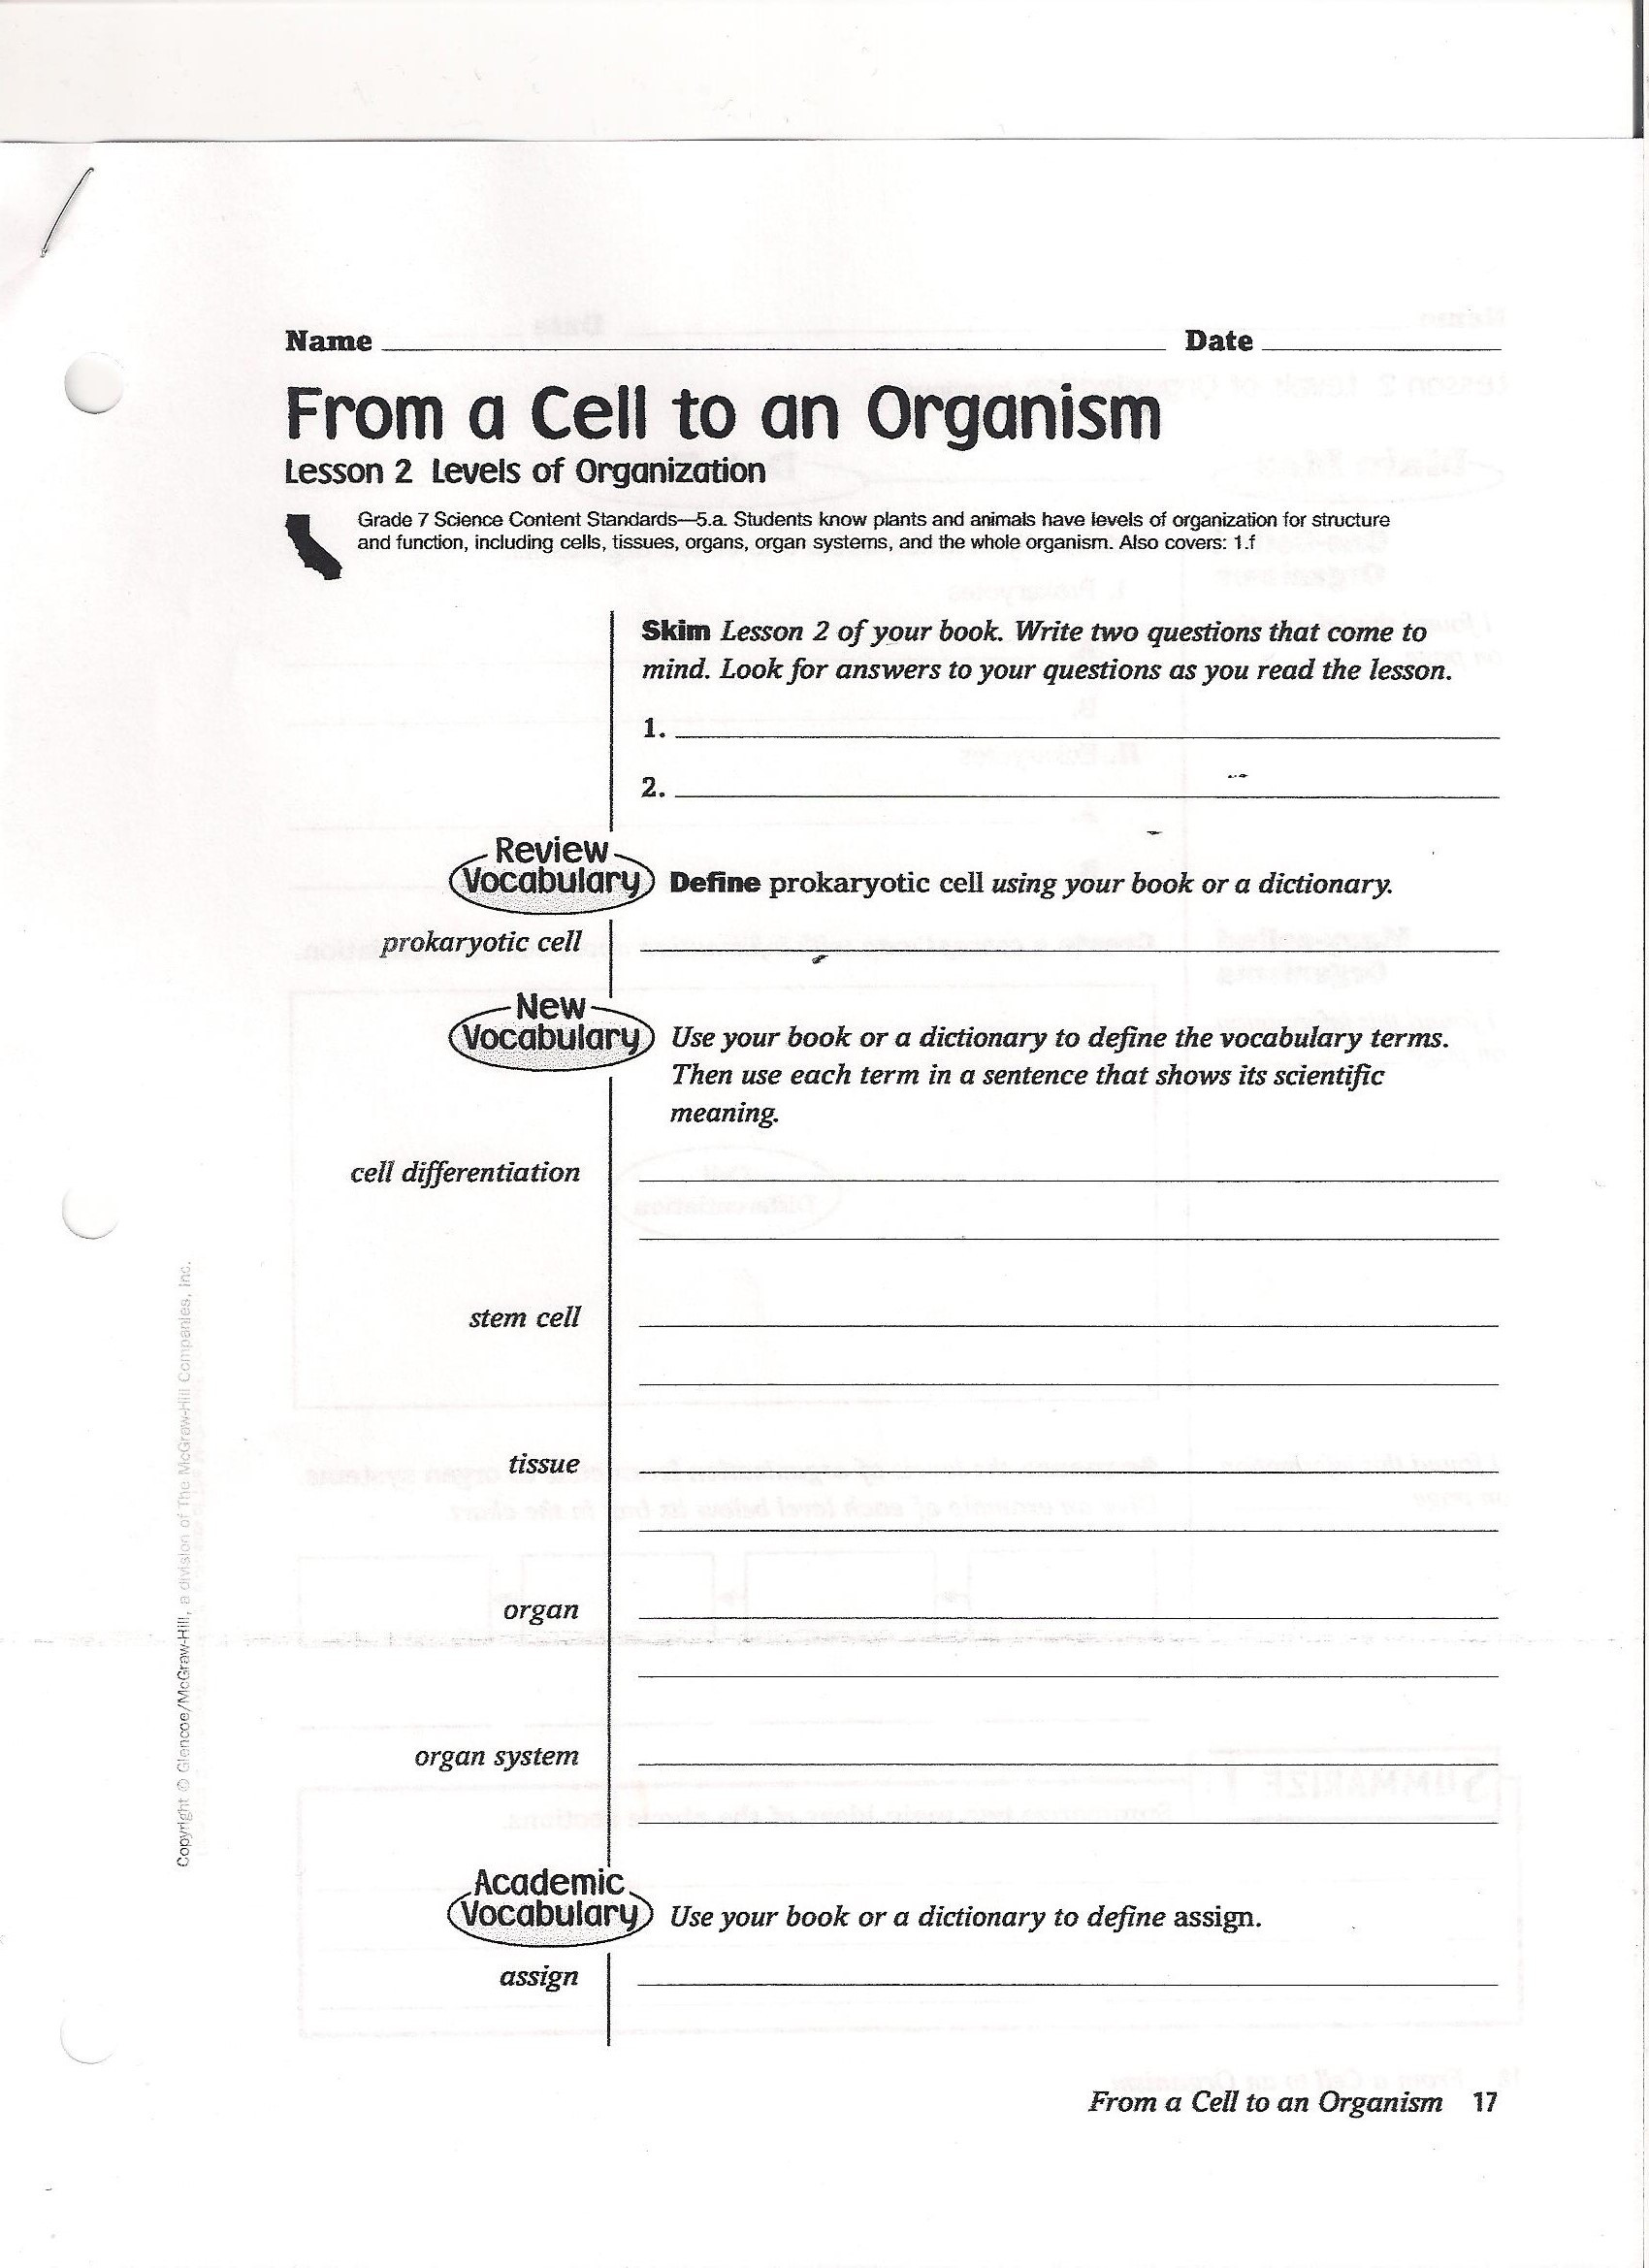 Cell theory Worksheet 7th Grade Unique is Life Science Worksheet Educational 7th Grade Cell